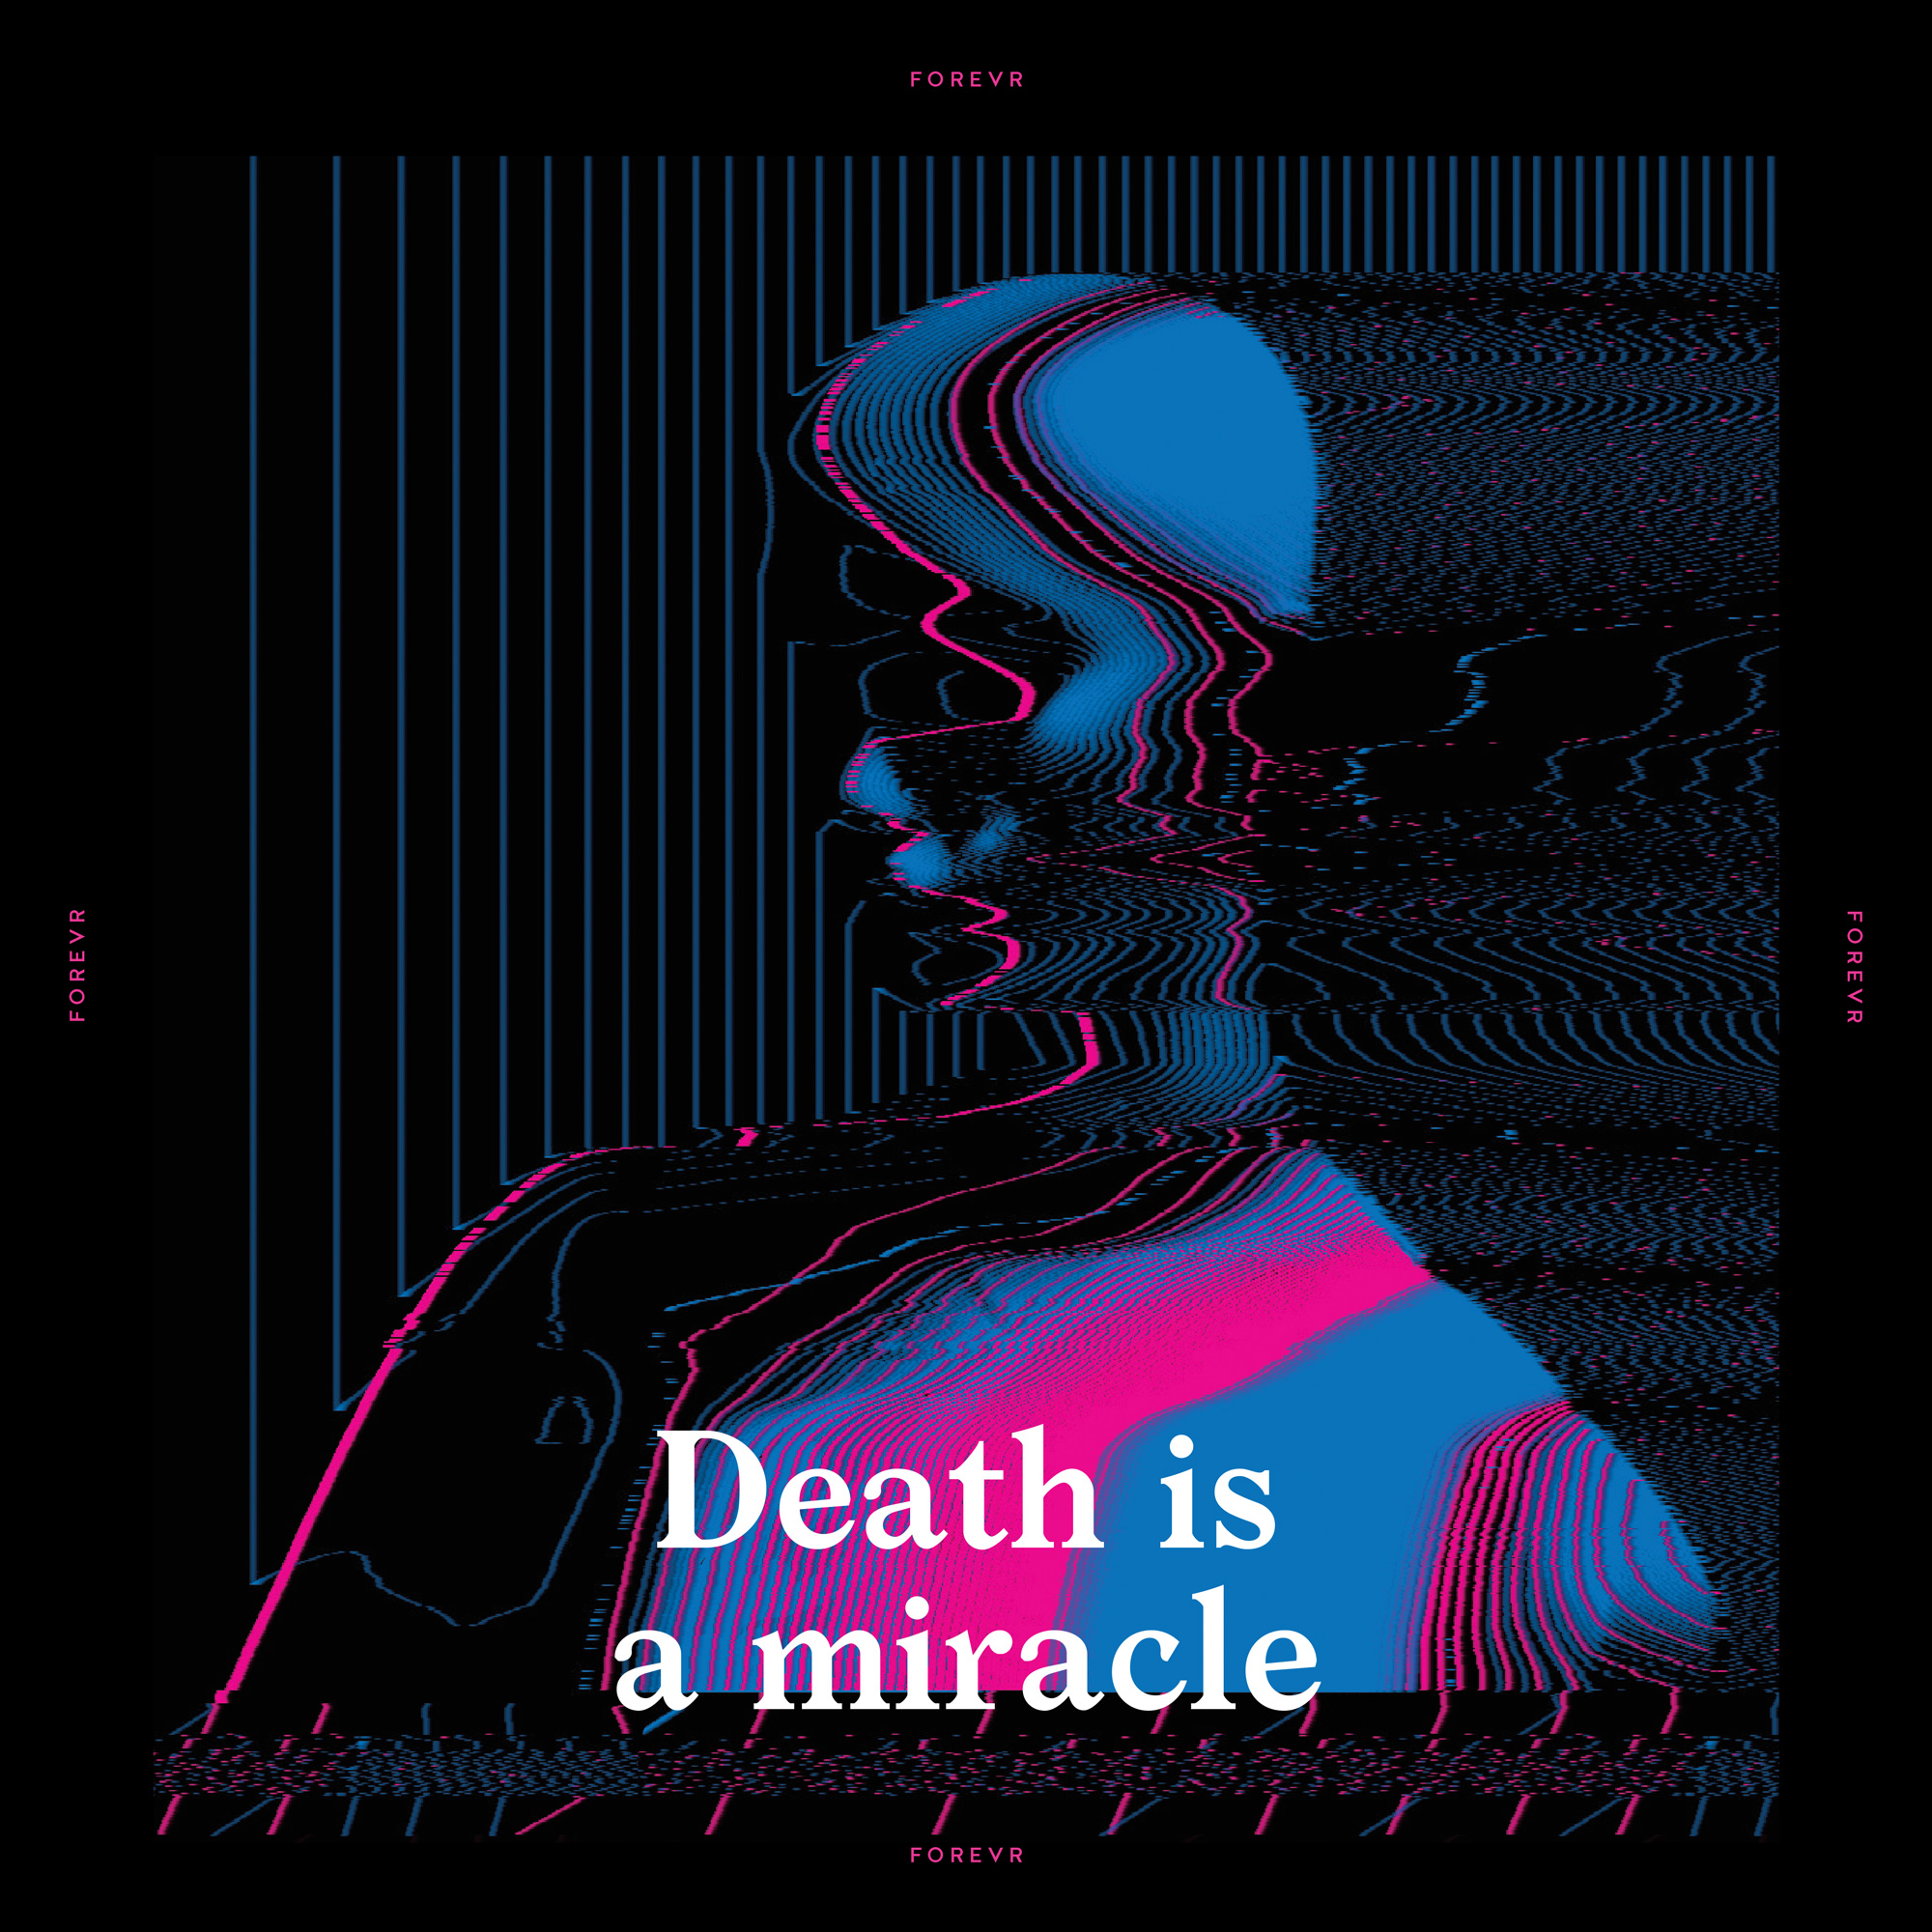 FOREVR -Death is a miracle album cover.jpg